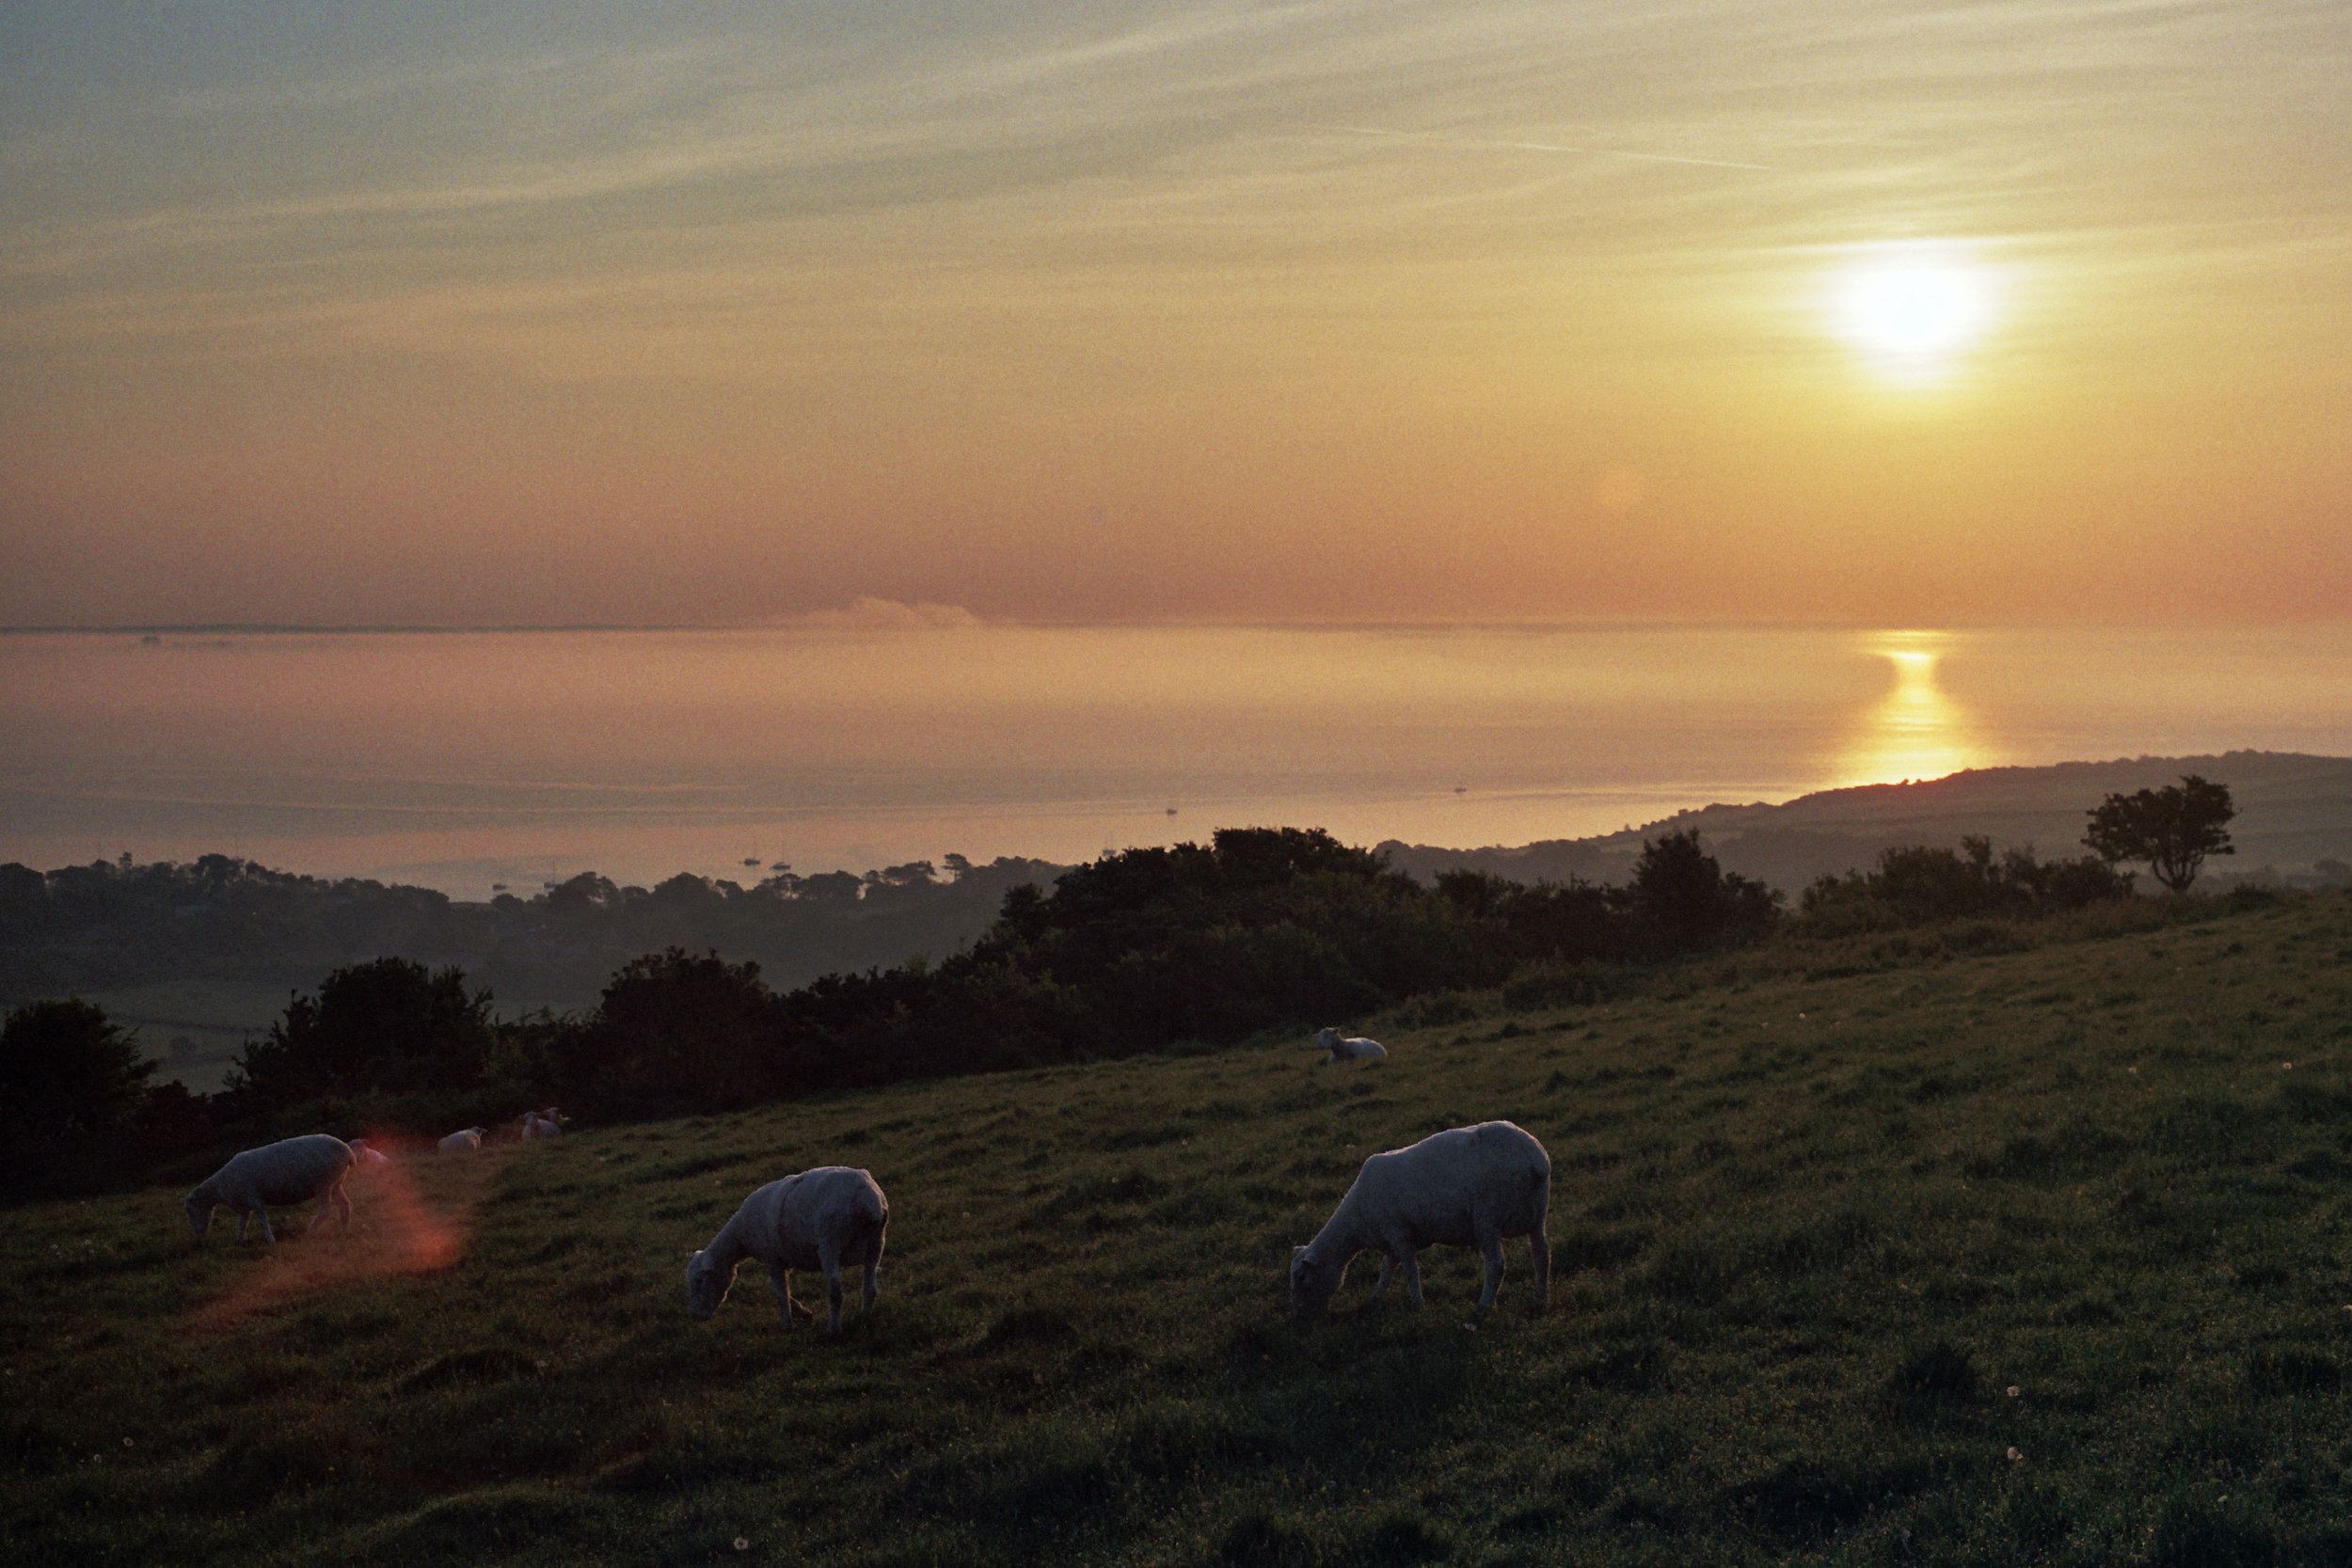 Sunrise walk up the hills and along the cliffs to..